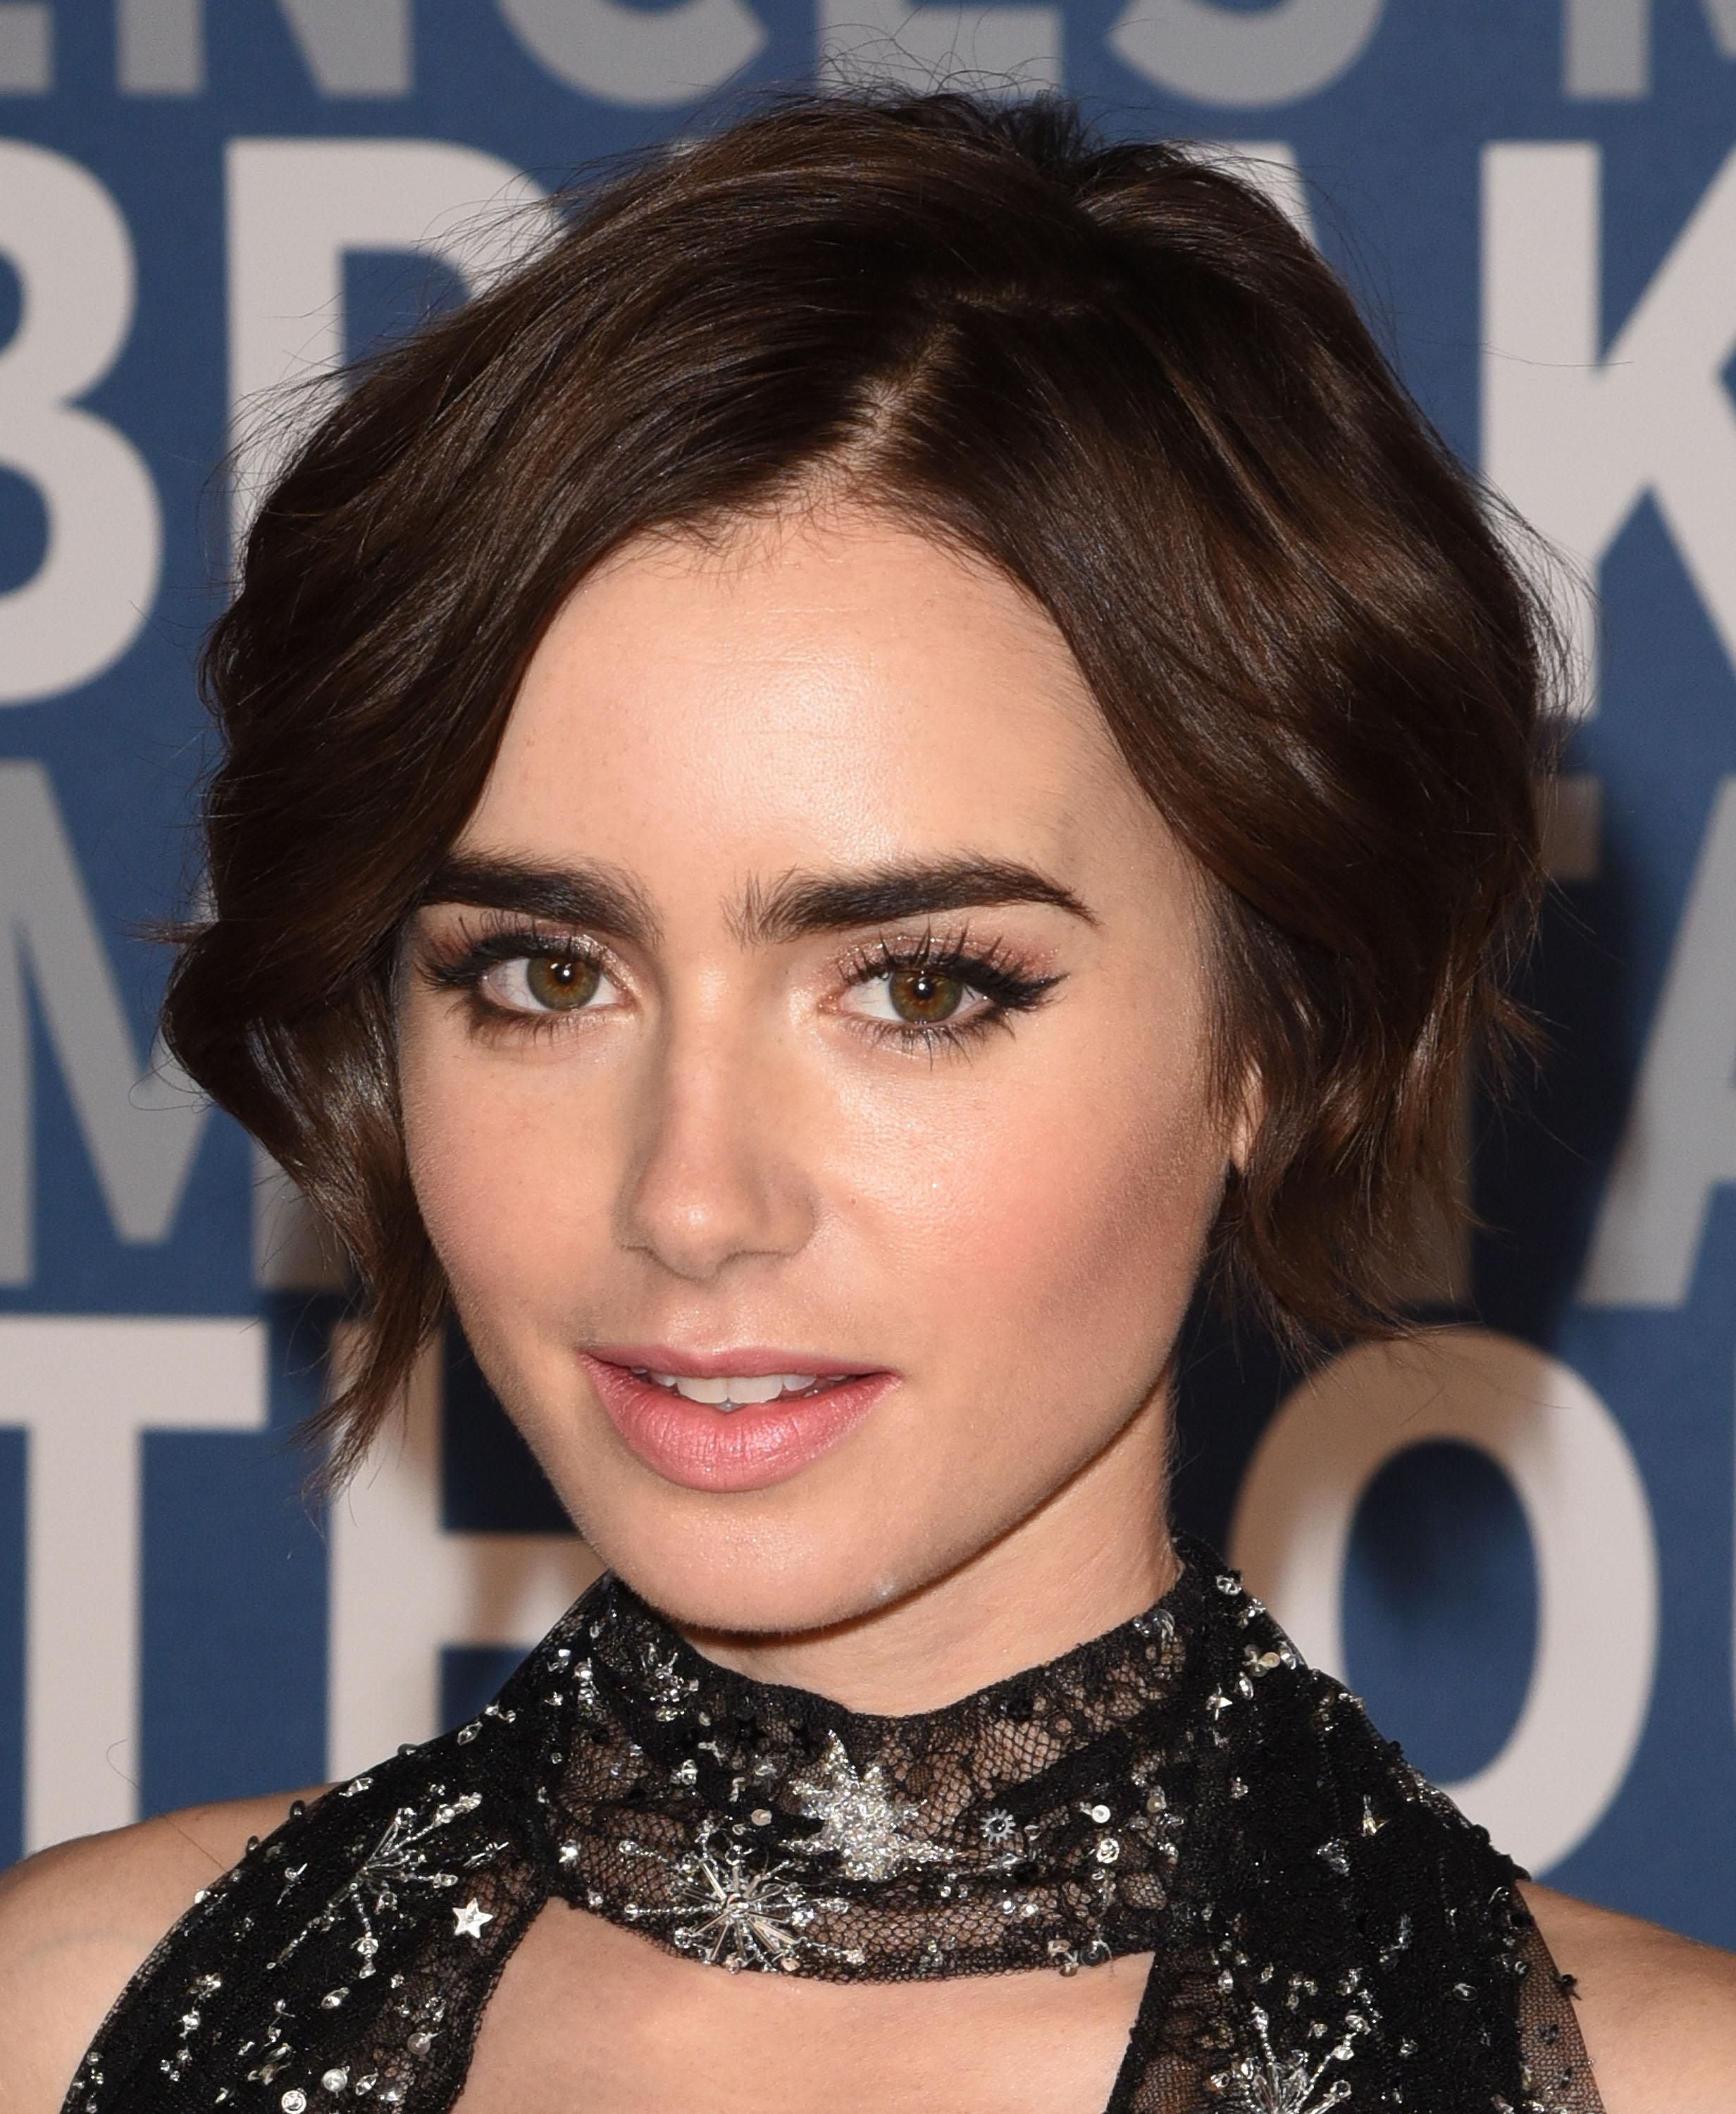 The 25 Best Thick Eyebrows In Hollywood And How To Get Them Lily Collins Eyebrows Short Hair Haircuts Hair Makeup